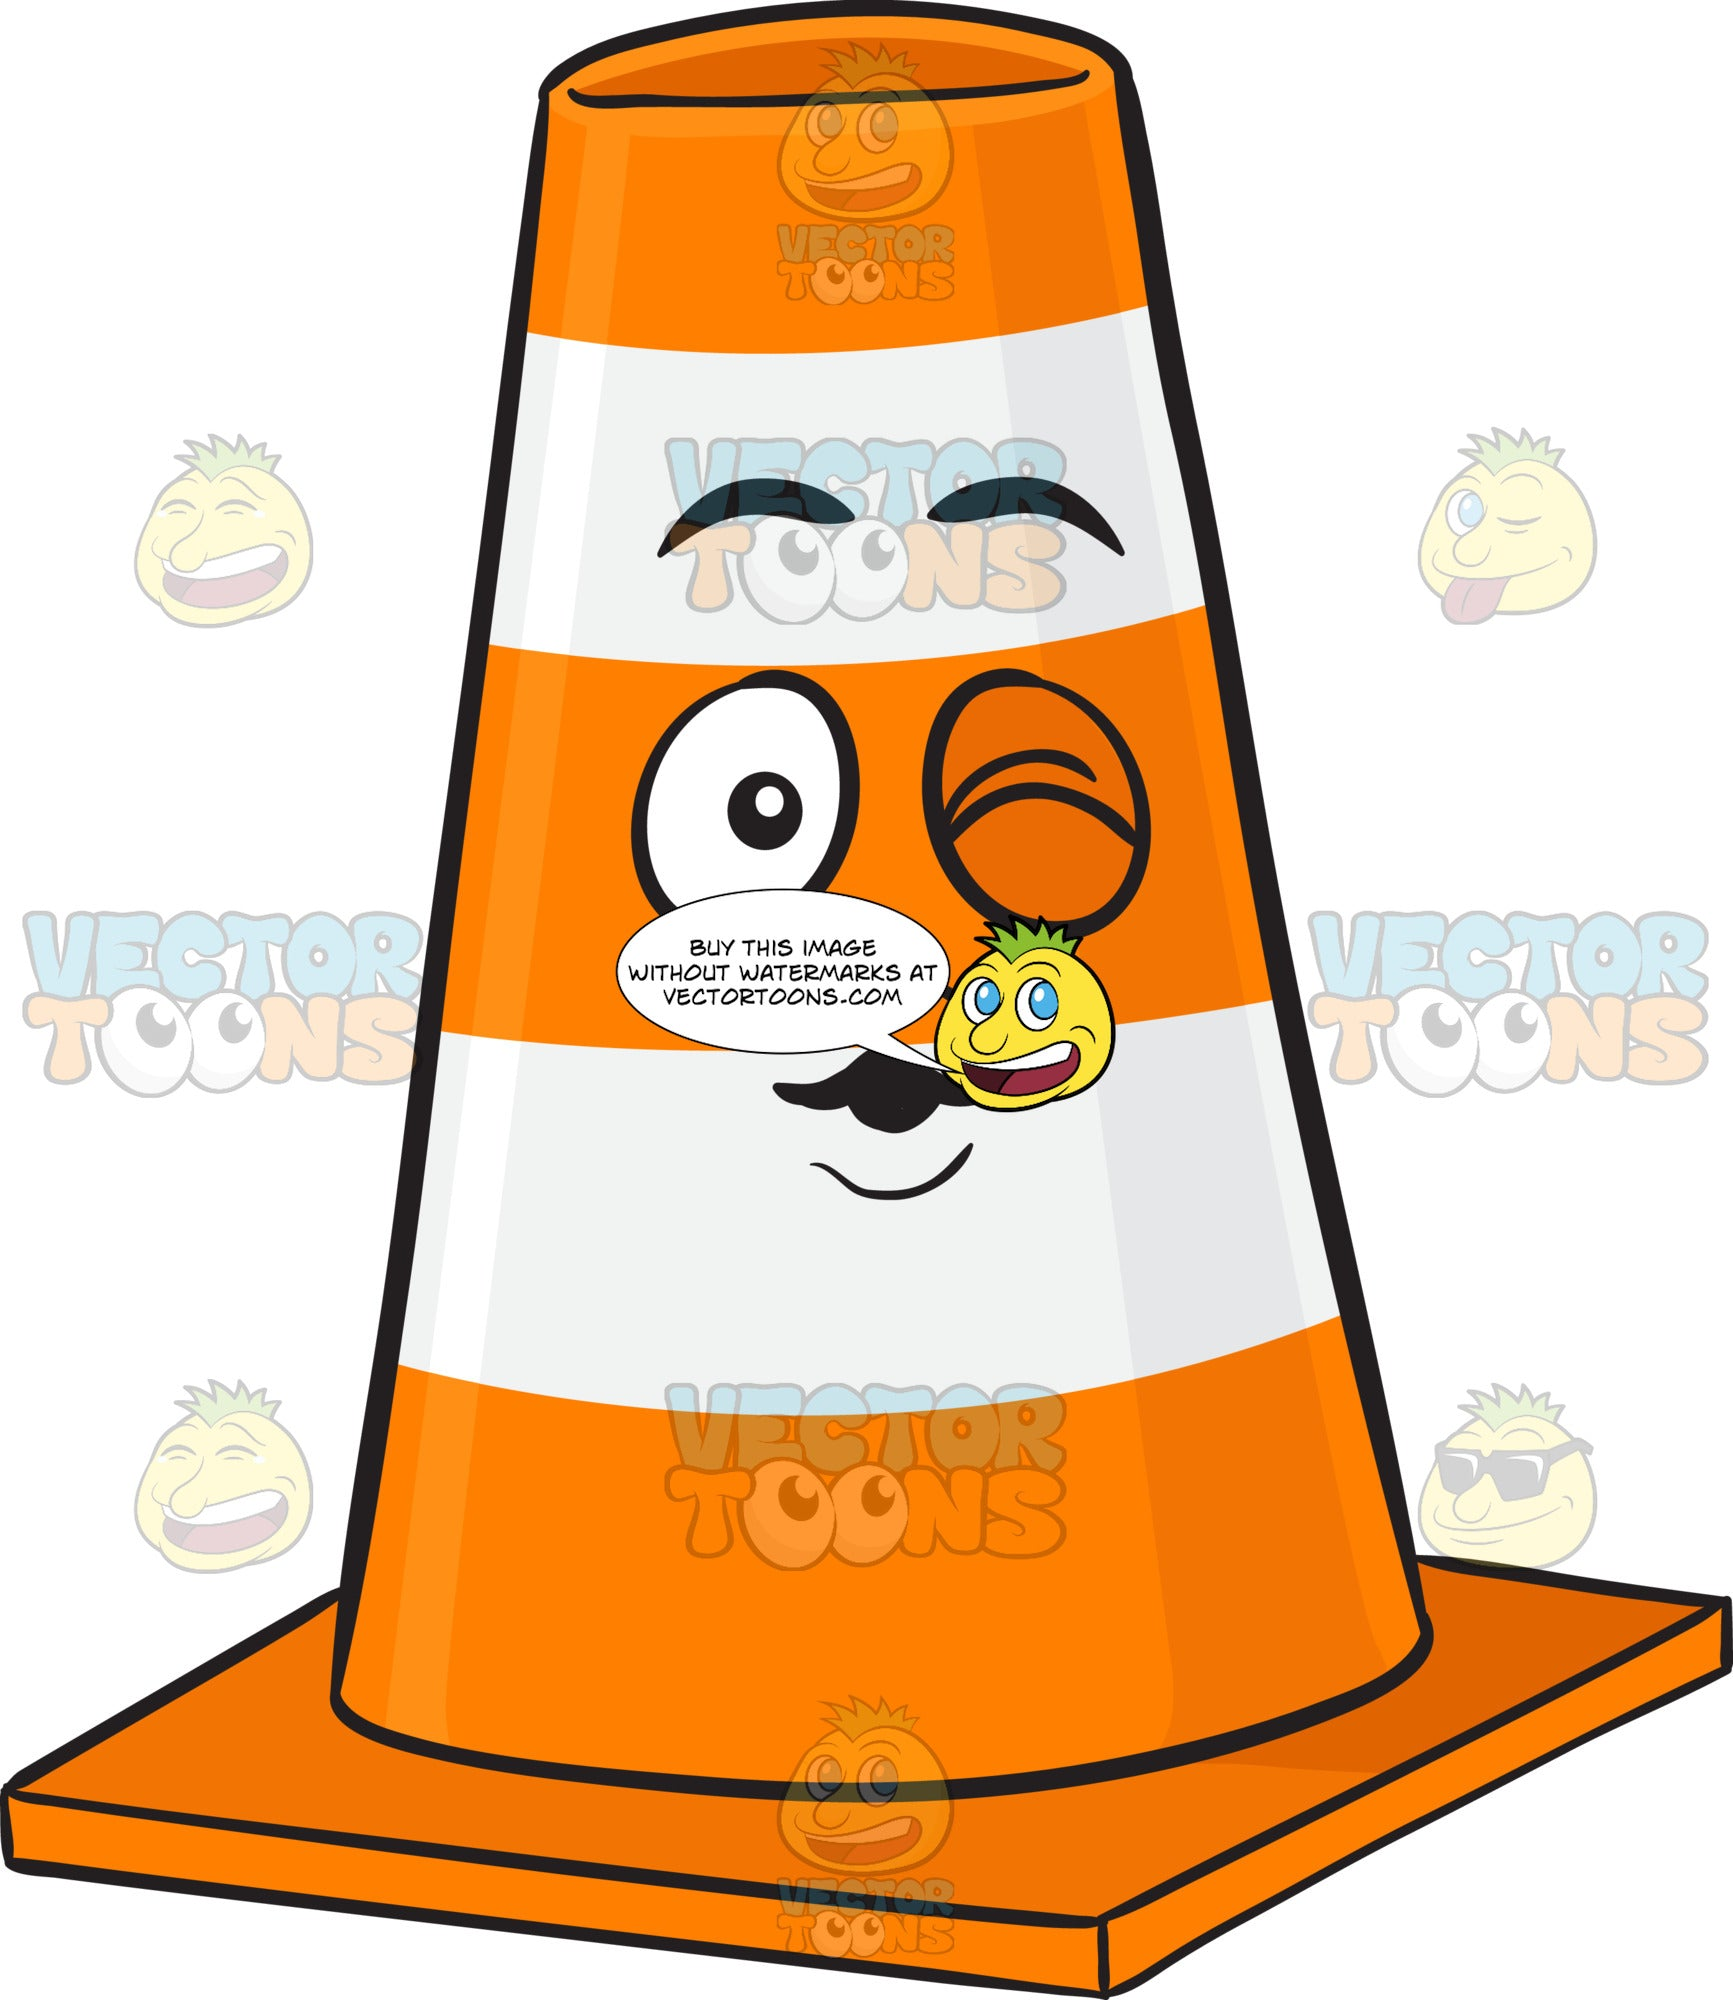 Kiss flirty. Traffic cone character blowing